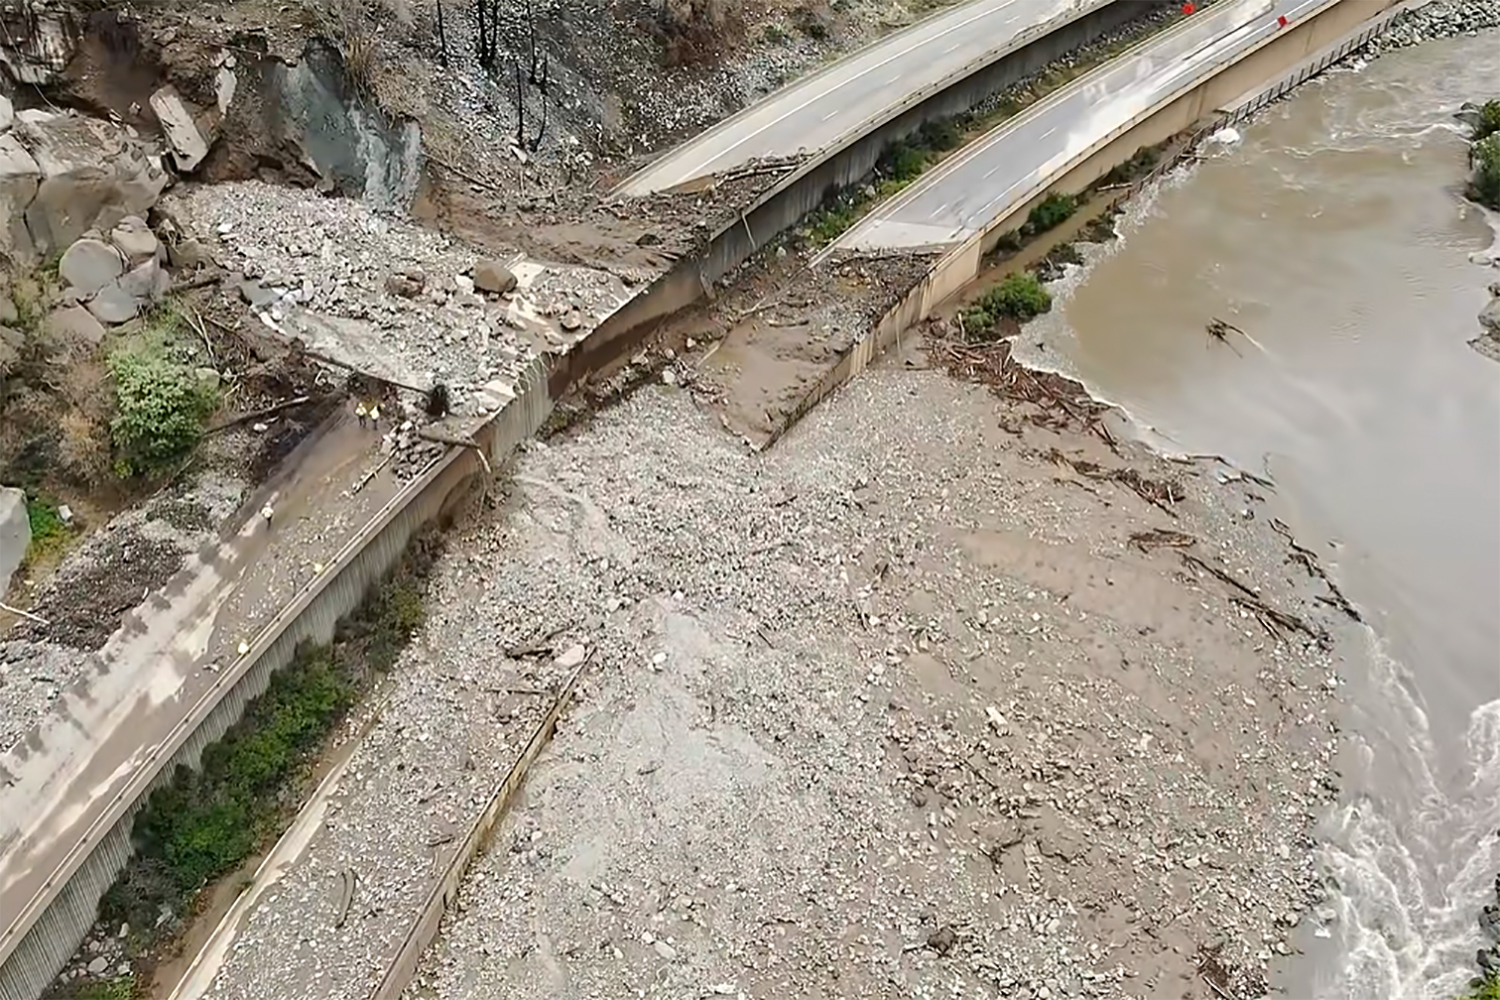 Mudslide on scenic Colorado highway tests limits of aging infrastructure amid climate change